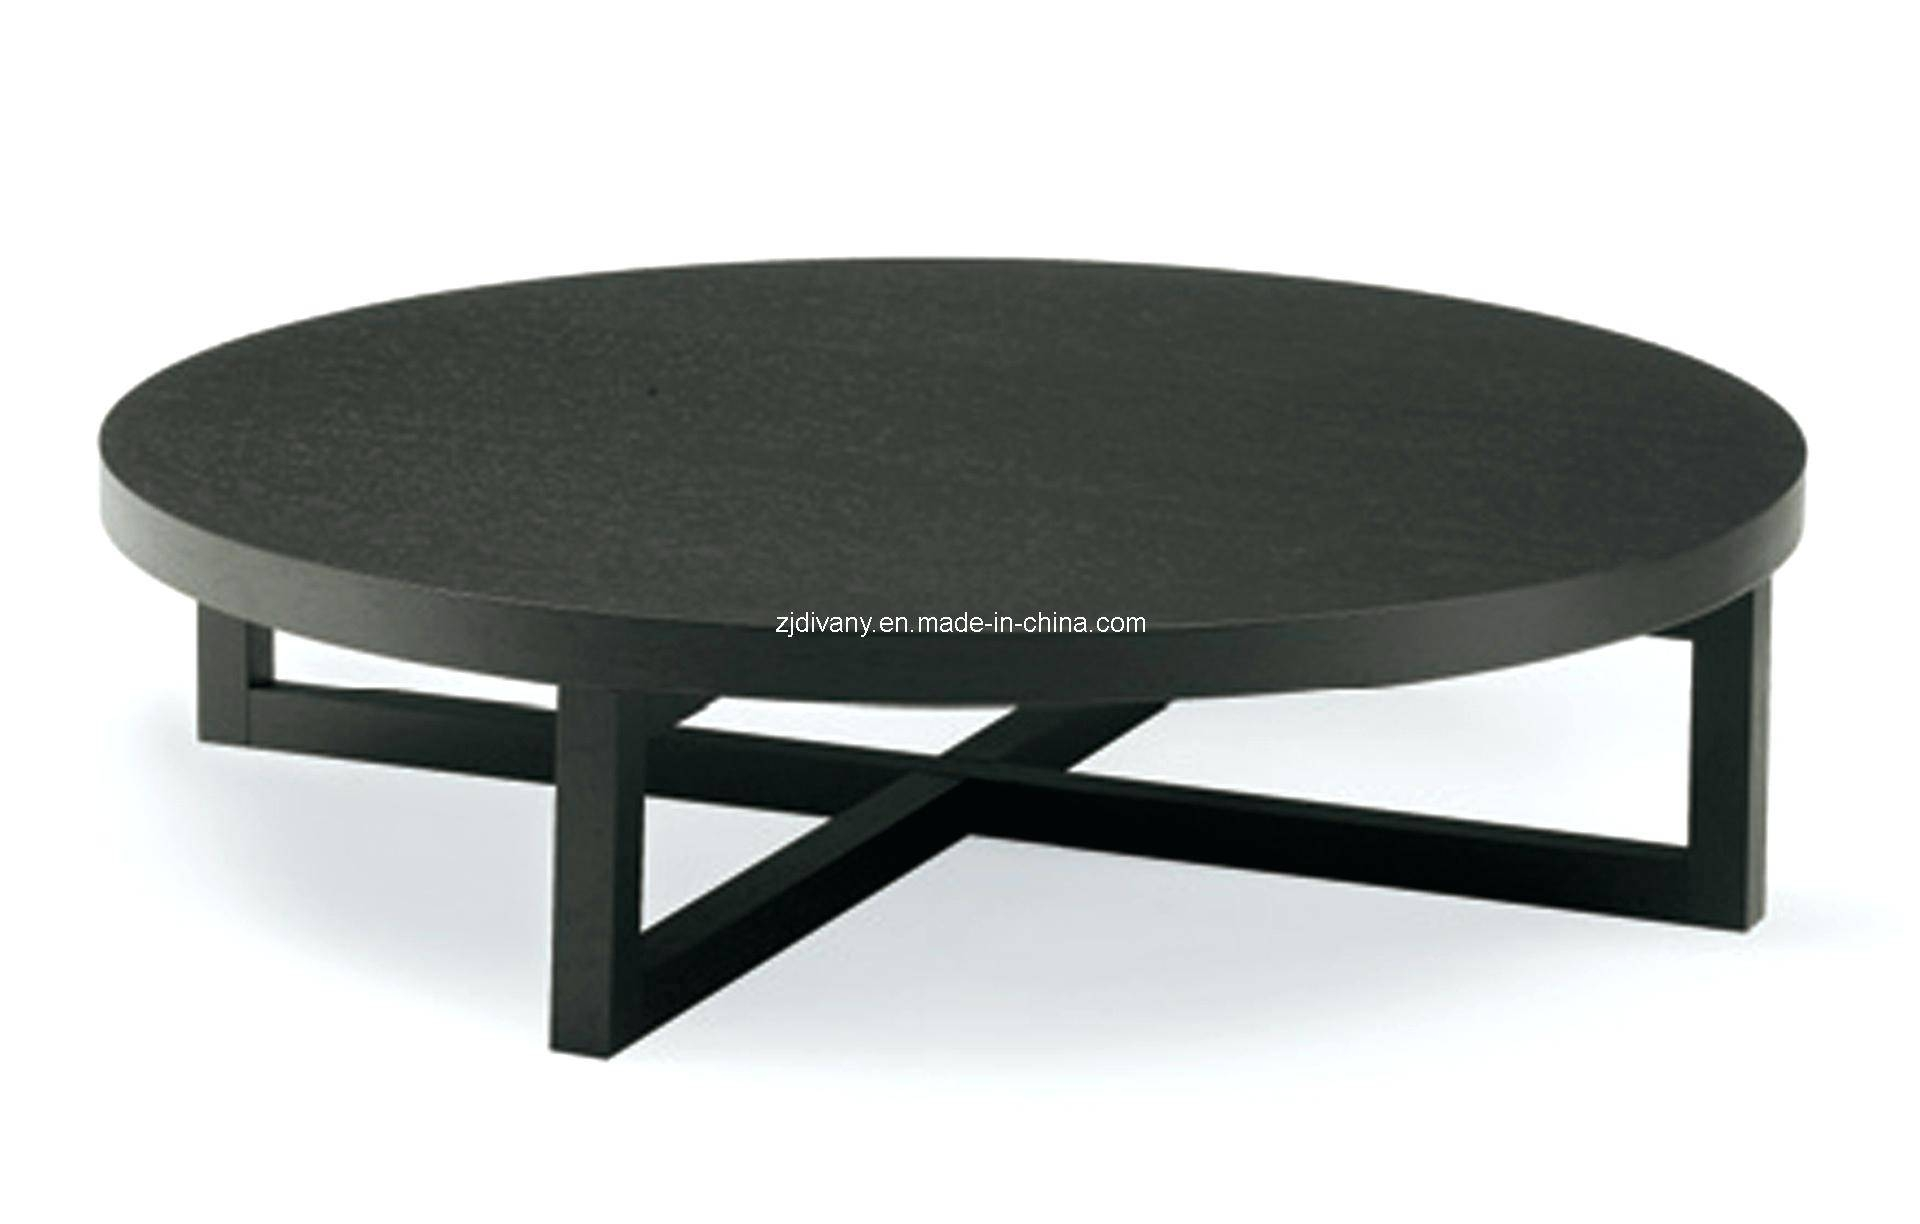 Coffee Table ~ Low Coffee Table Japanese Style Square With Storage for Low Coffee Tables With Storage (Image 4 of 30)